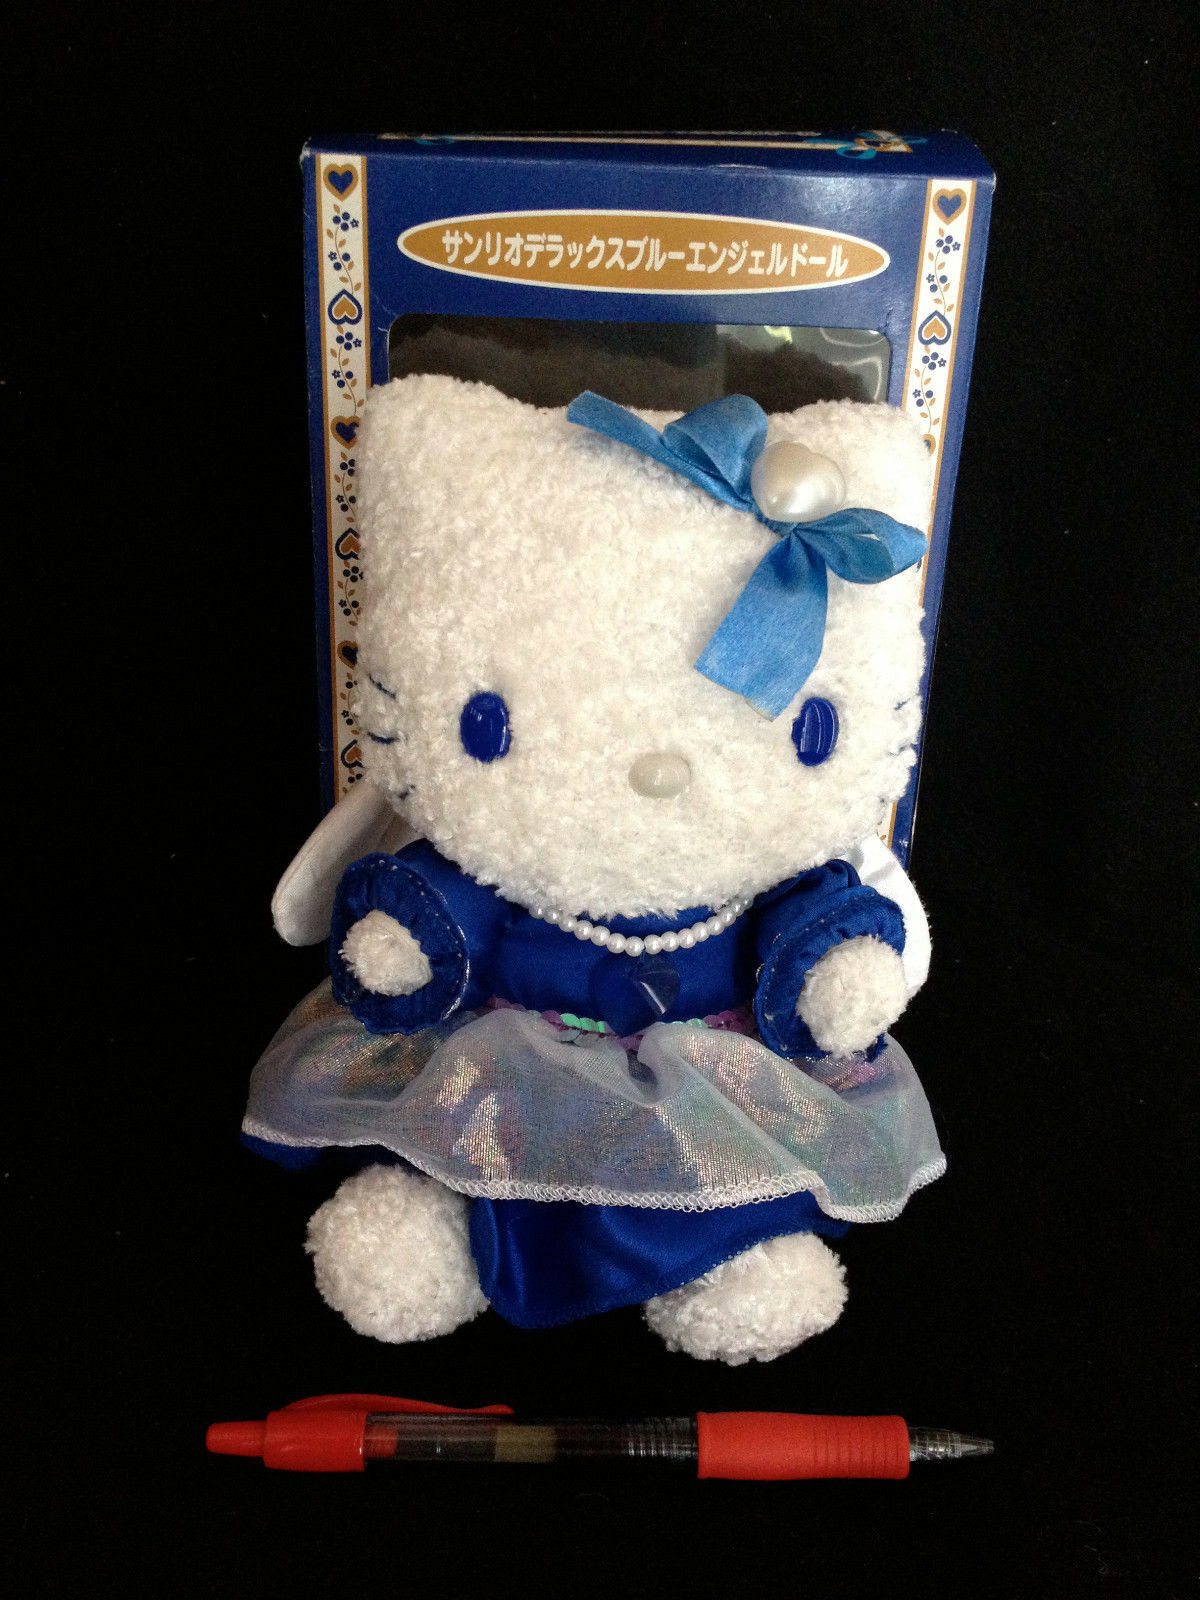 BOXED ROYAL blueE ANGEL HELLO KITTY from Japan-ship free